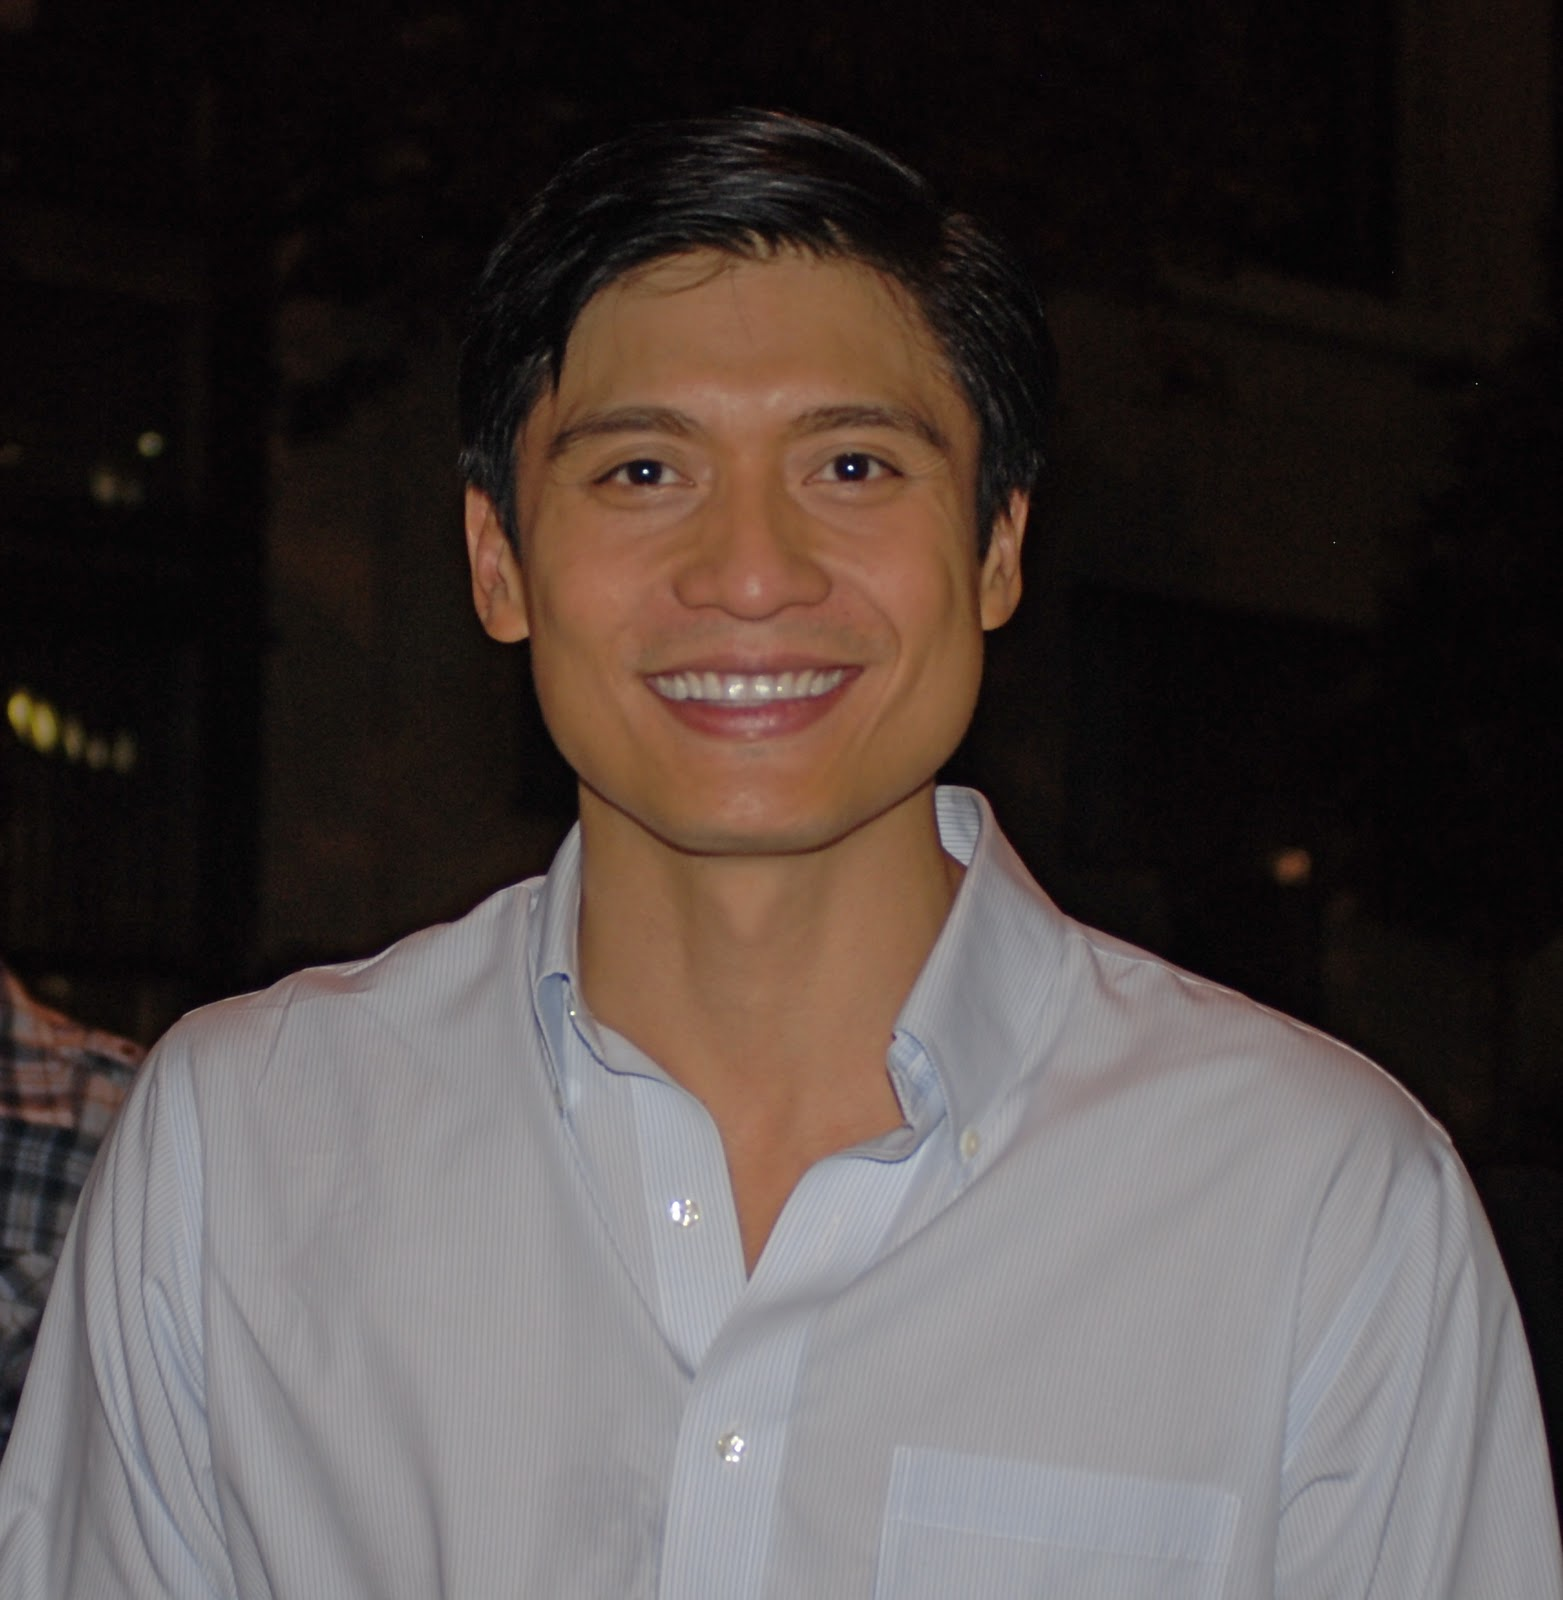 paolo montalban married